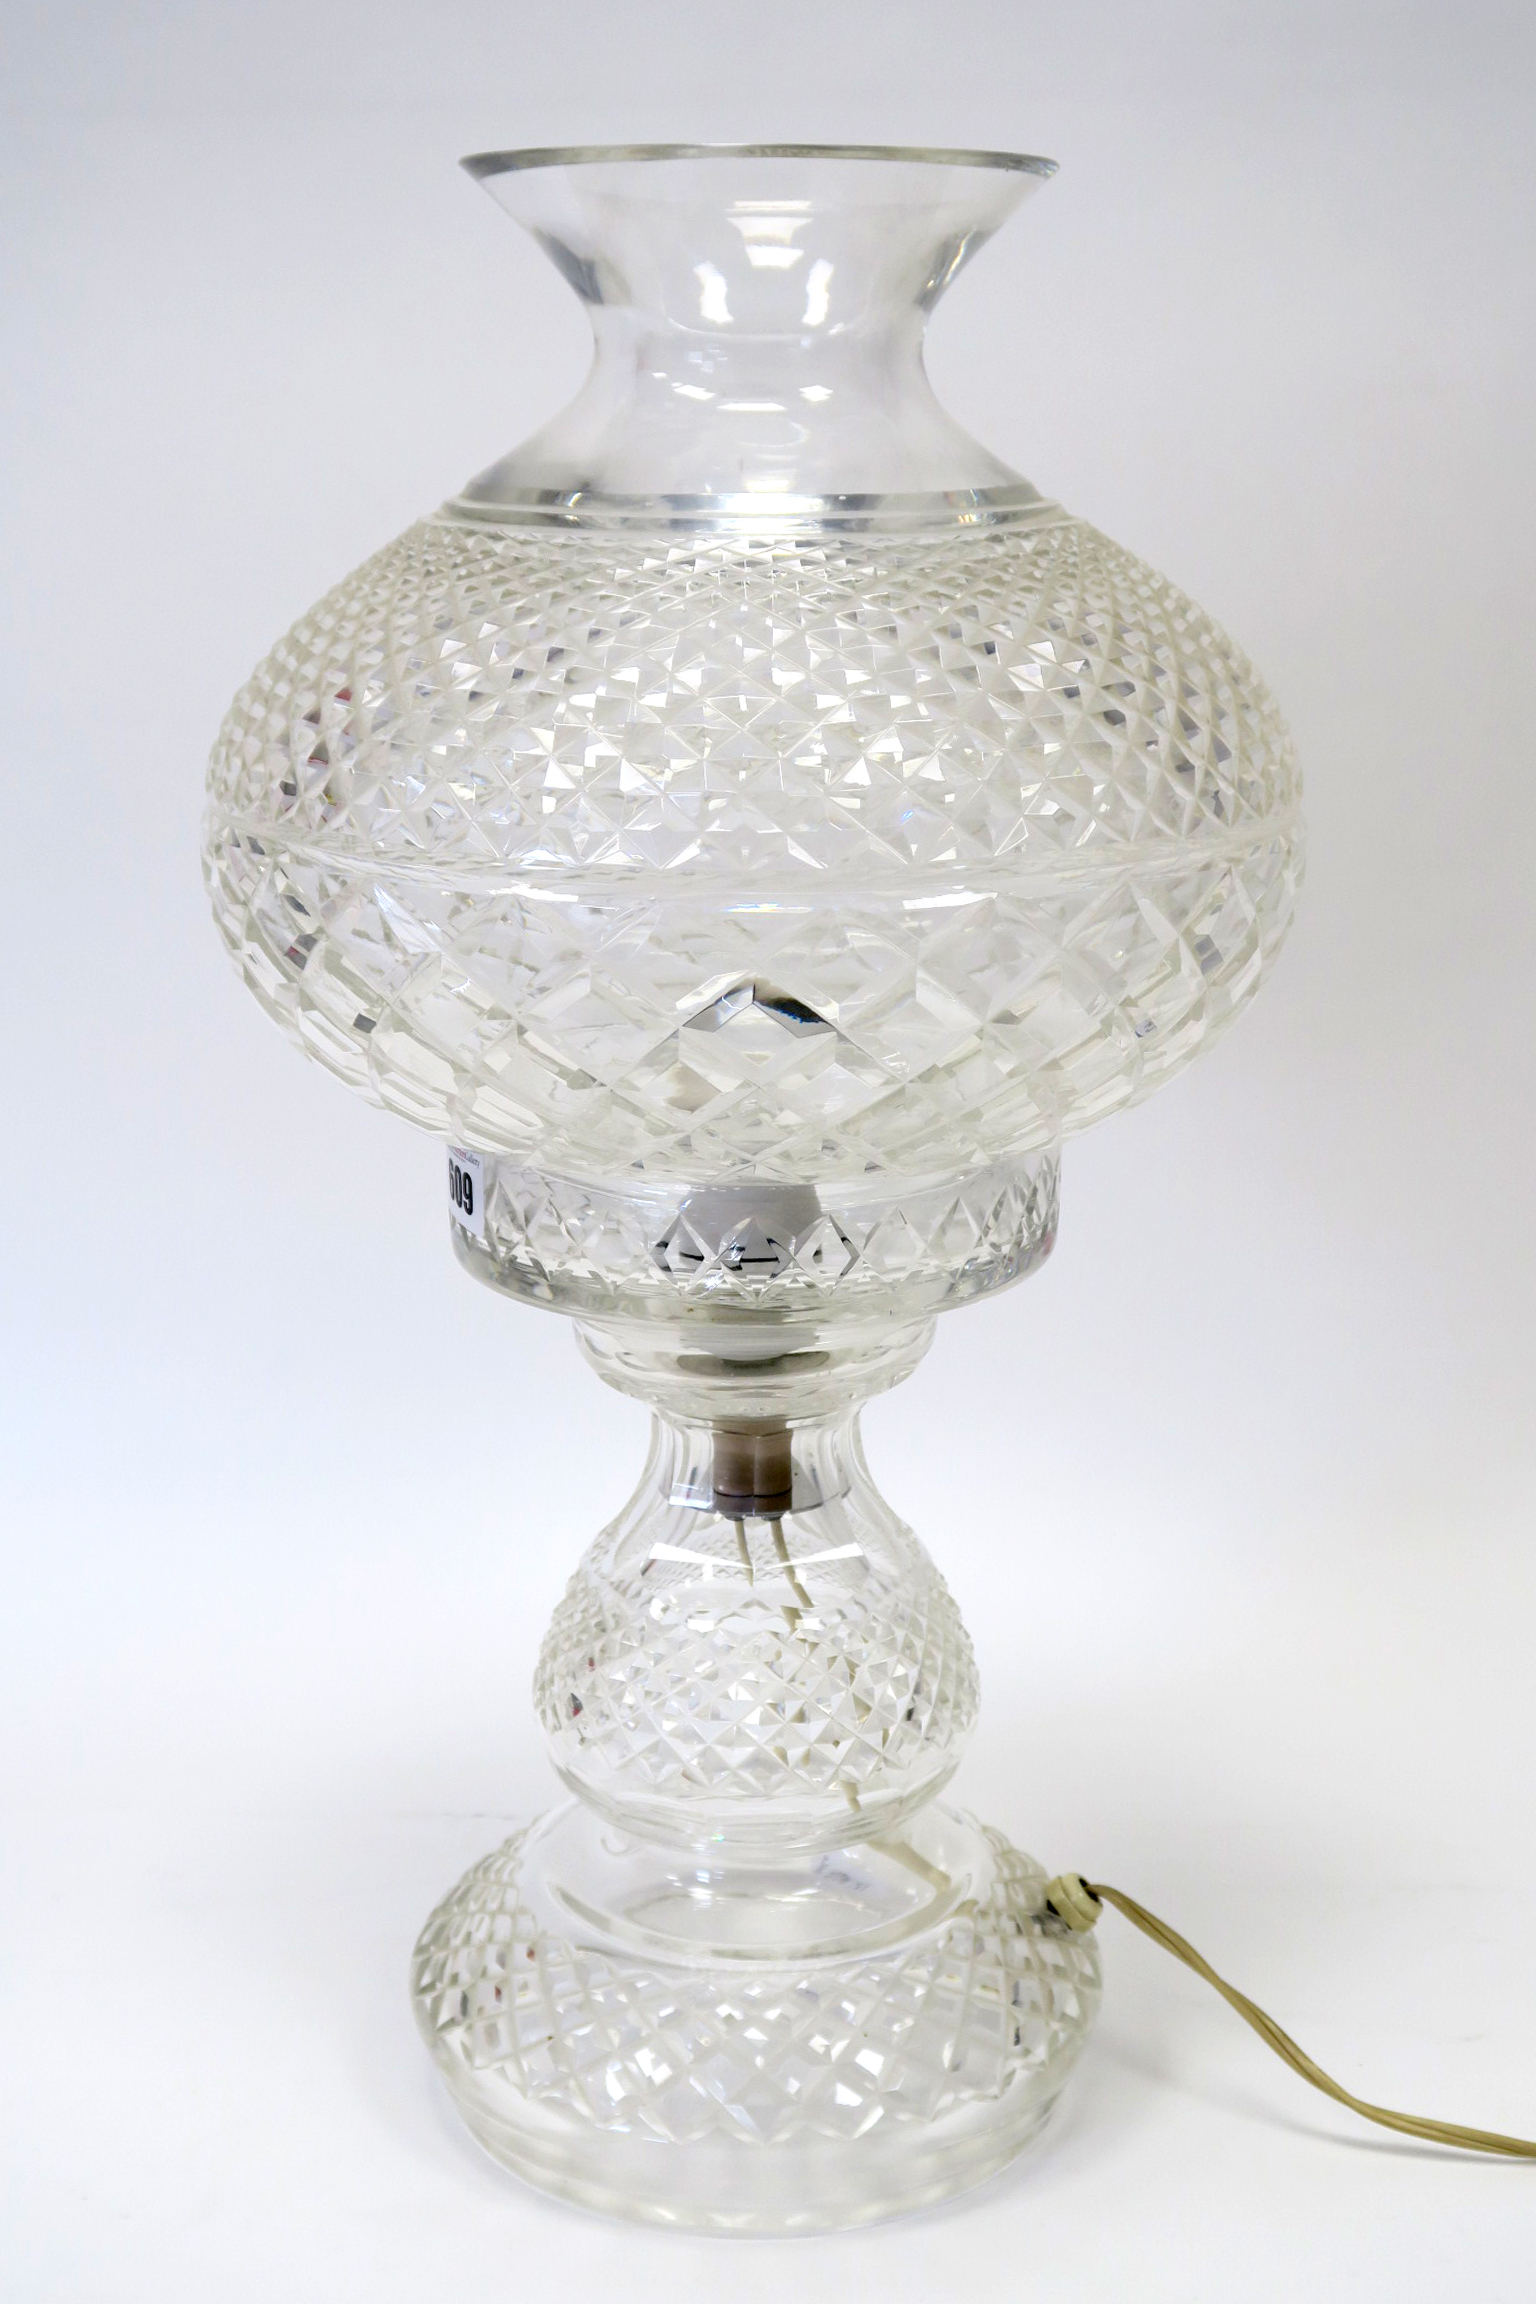 Lot 609 - A Waterford Crystal Table Lamp, with hobnail decoration, the bulbous shaped shade with flared neck